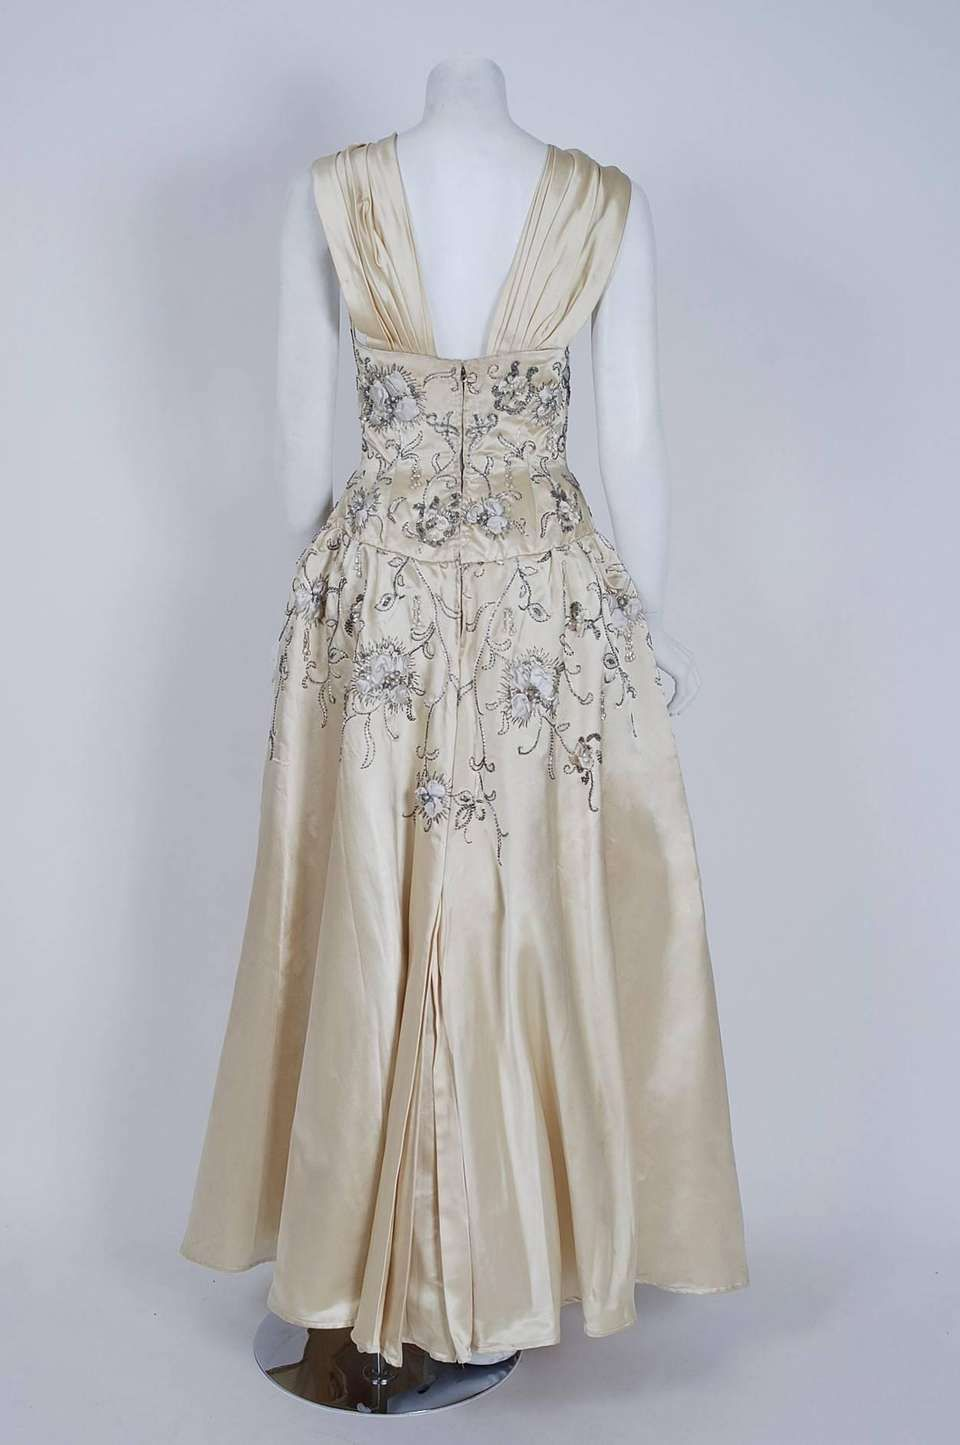 0d6701b8 For Sale on 1stdibs - Breathtaking mid-1950's ivory white satin ballgown  attributed to Pierre Balmain. This iconic designer created a very  sculptural ...